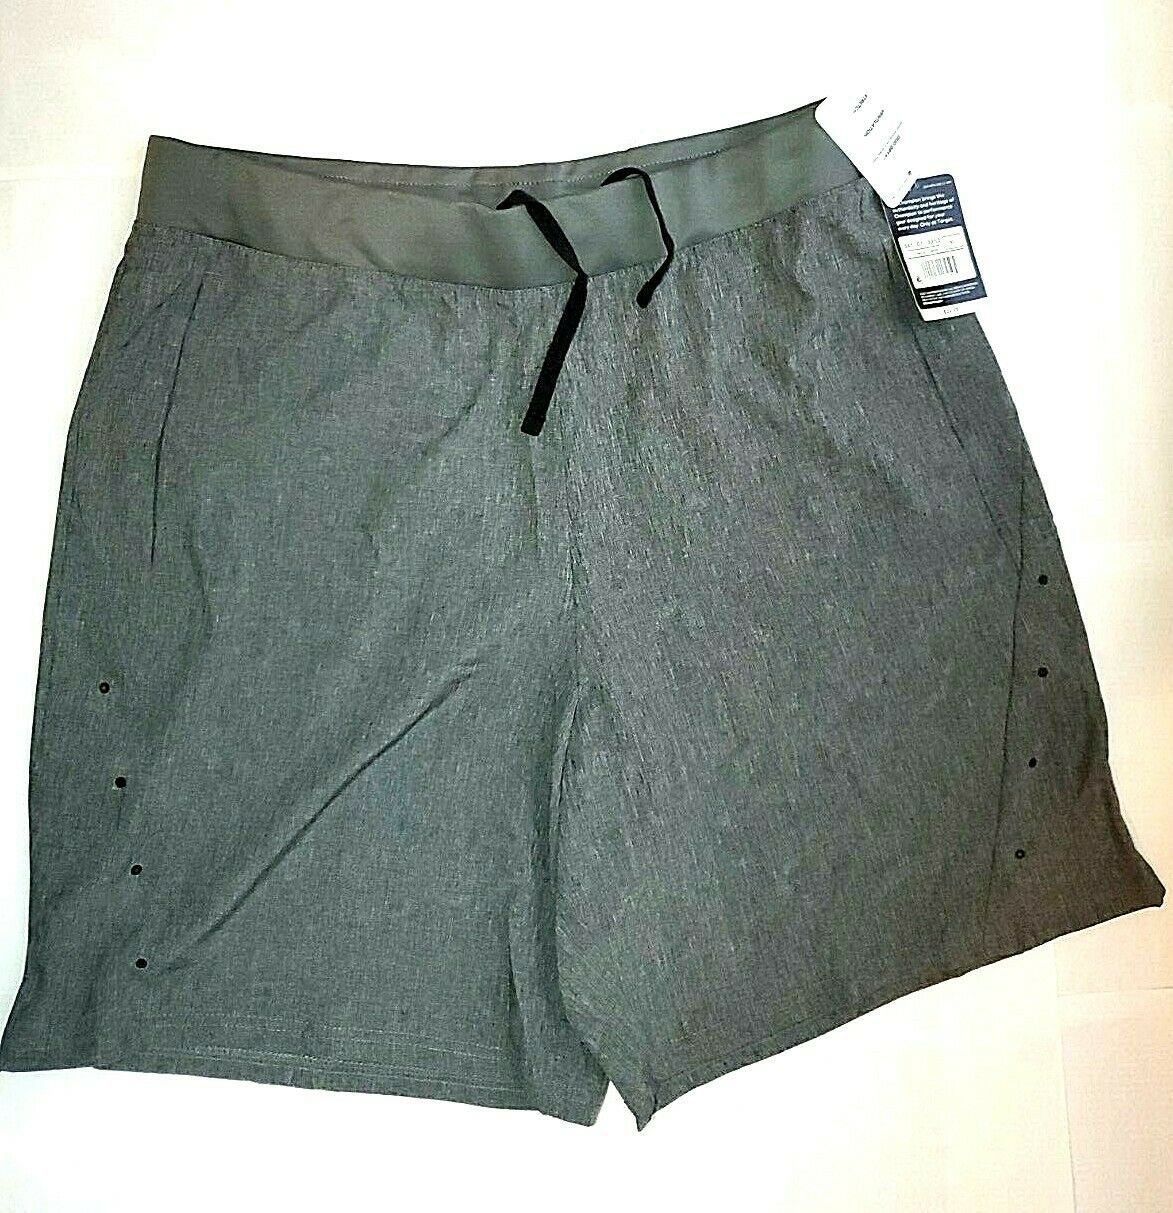 c9 Champion Shorts XL Grey Mens Unlined Active Drawstring Waist Duo Dry MSRP 25$